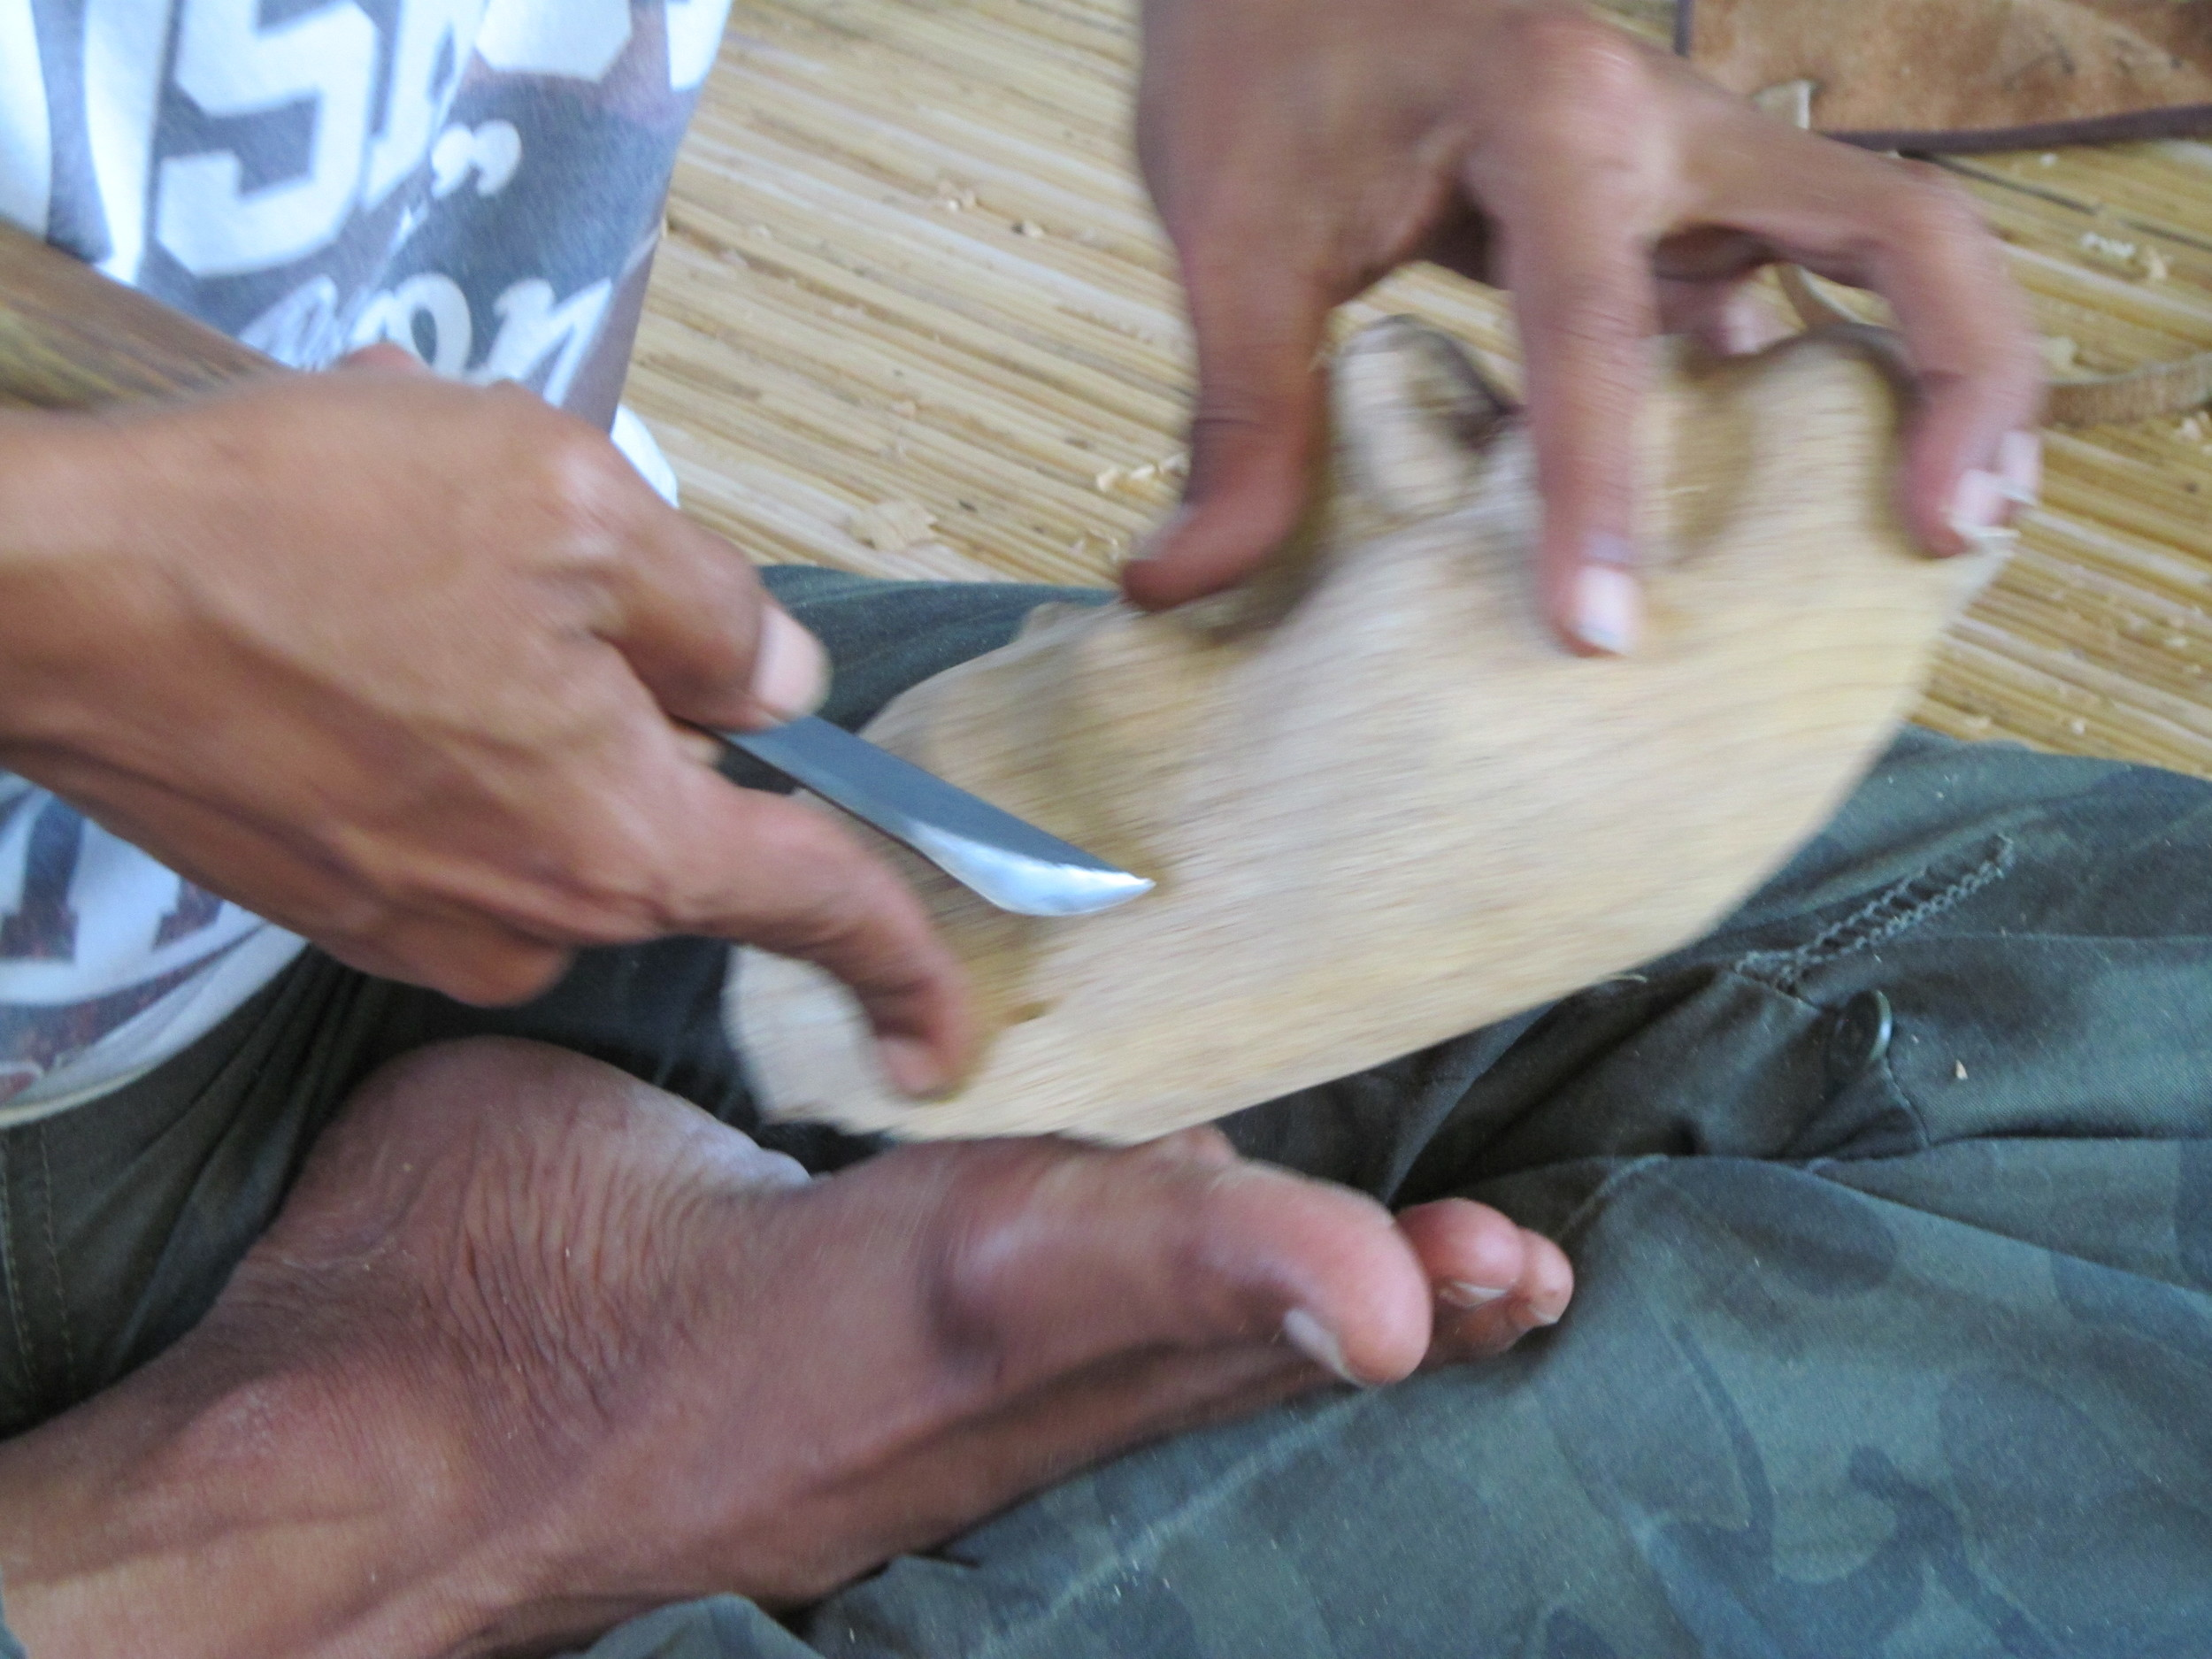 Lots of time to practice using the Balinese smoothing knives.